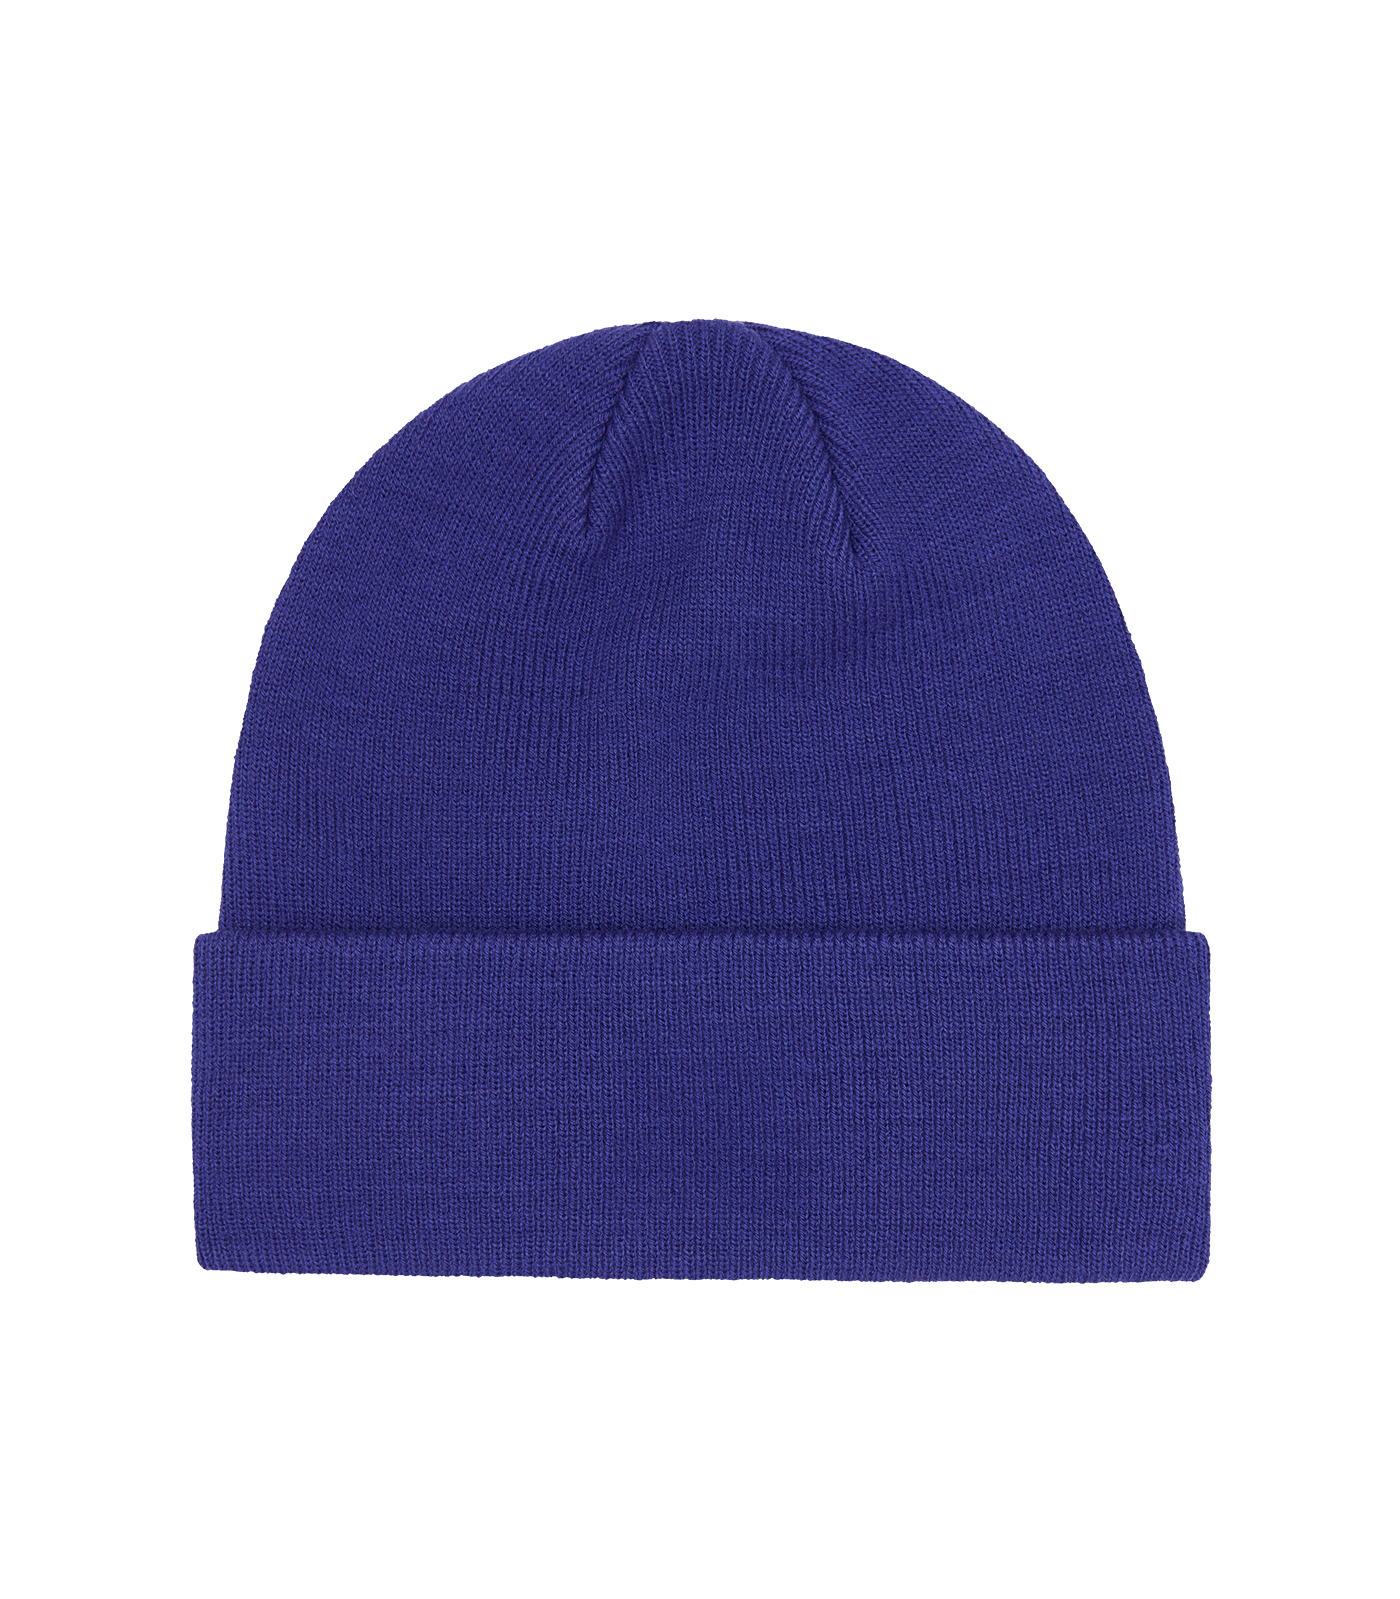 RUBBER PATCH RIBBED BEANIE - BLUE